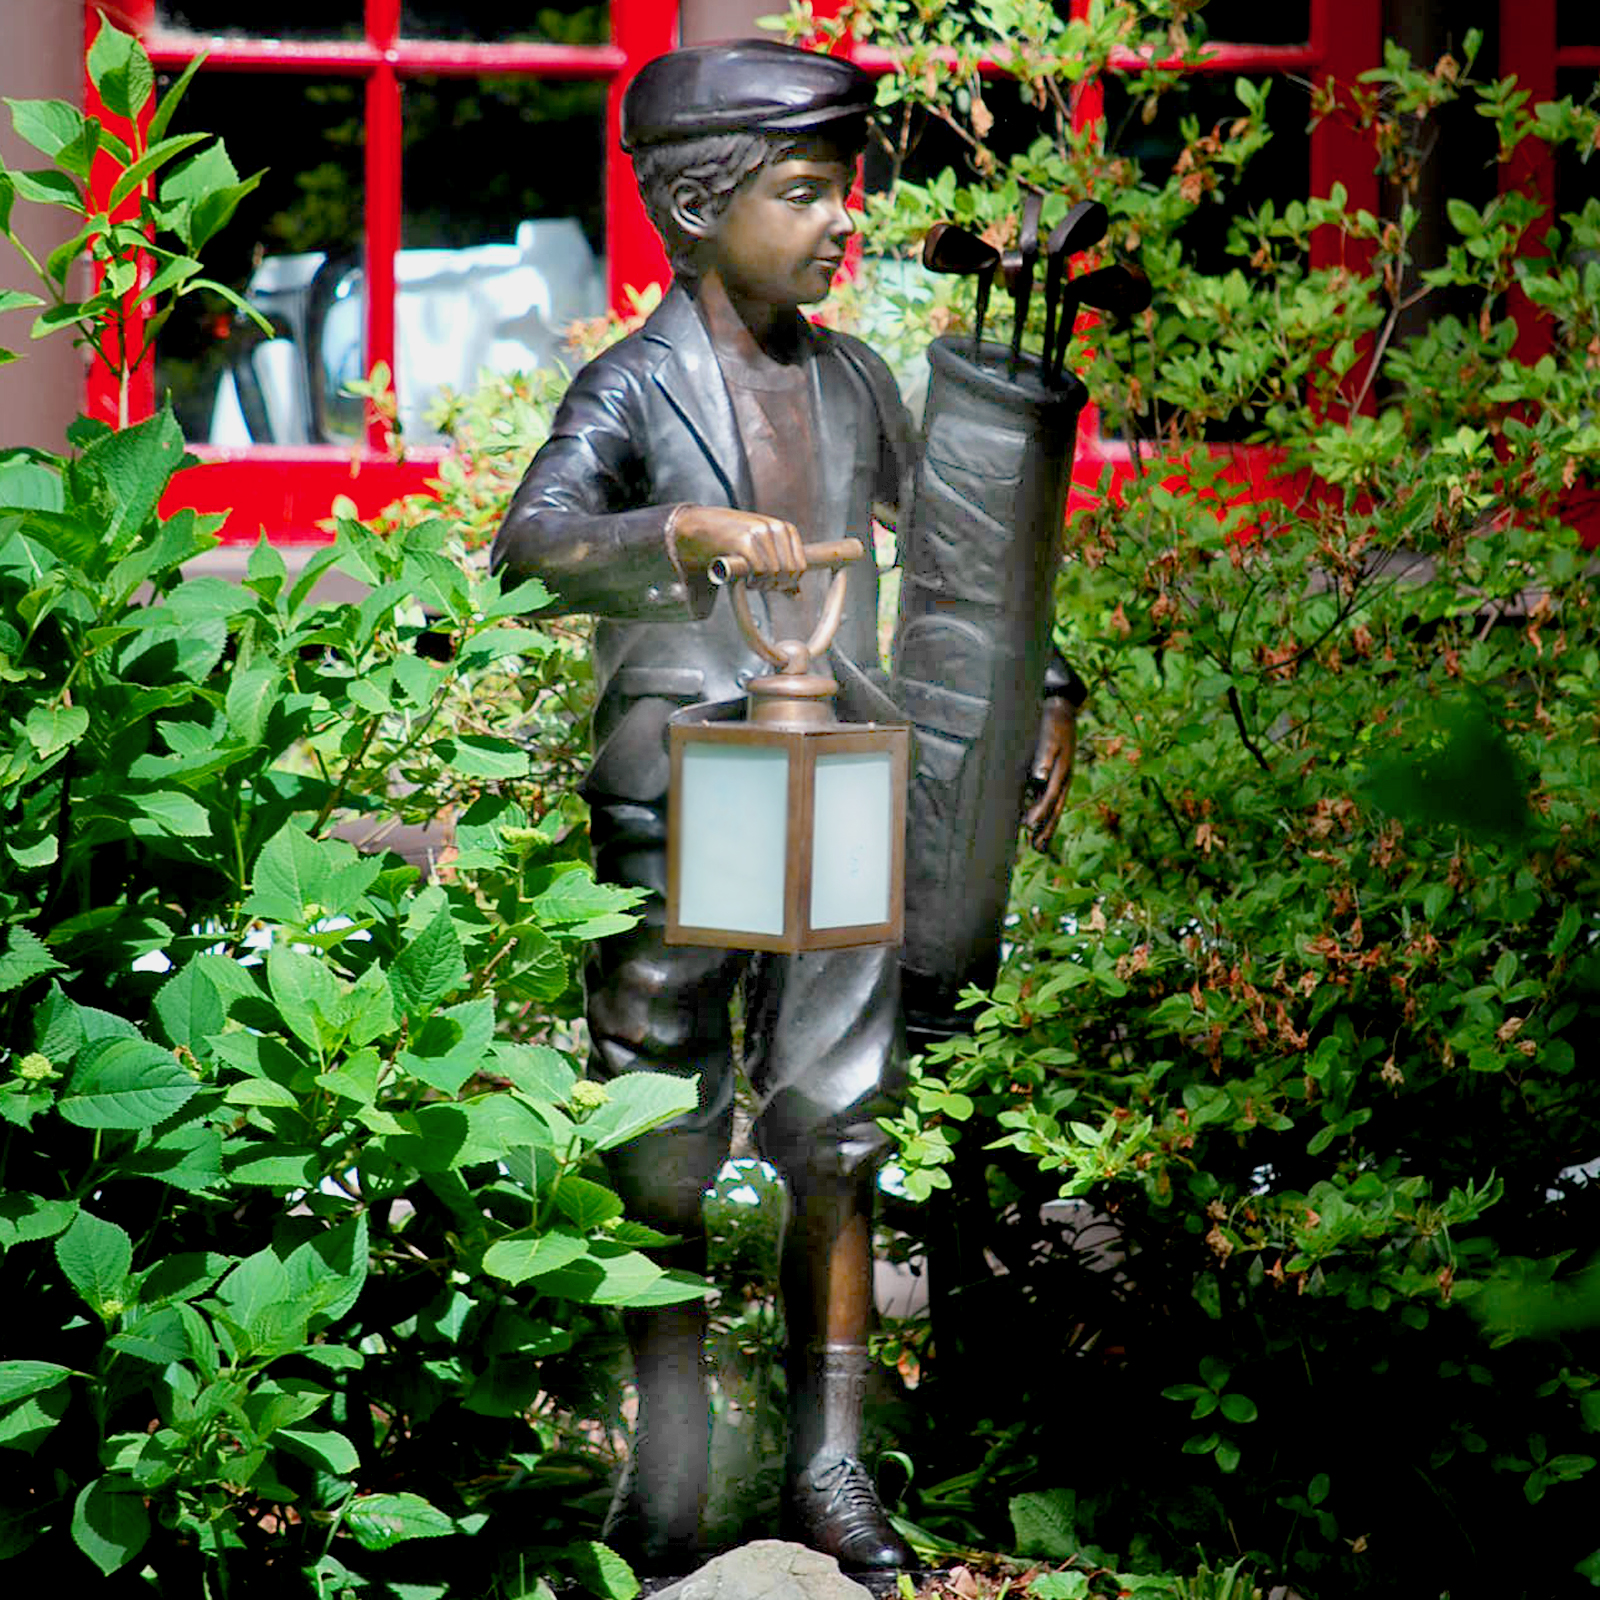 Cast Bronze Golfer Caddy Lantern Sculpture by Metropolitan Galleries. We have a wide range of cast bronze statues, bronze fountains, and bronze statuary in